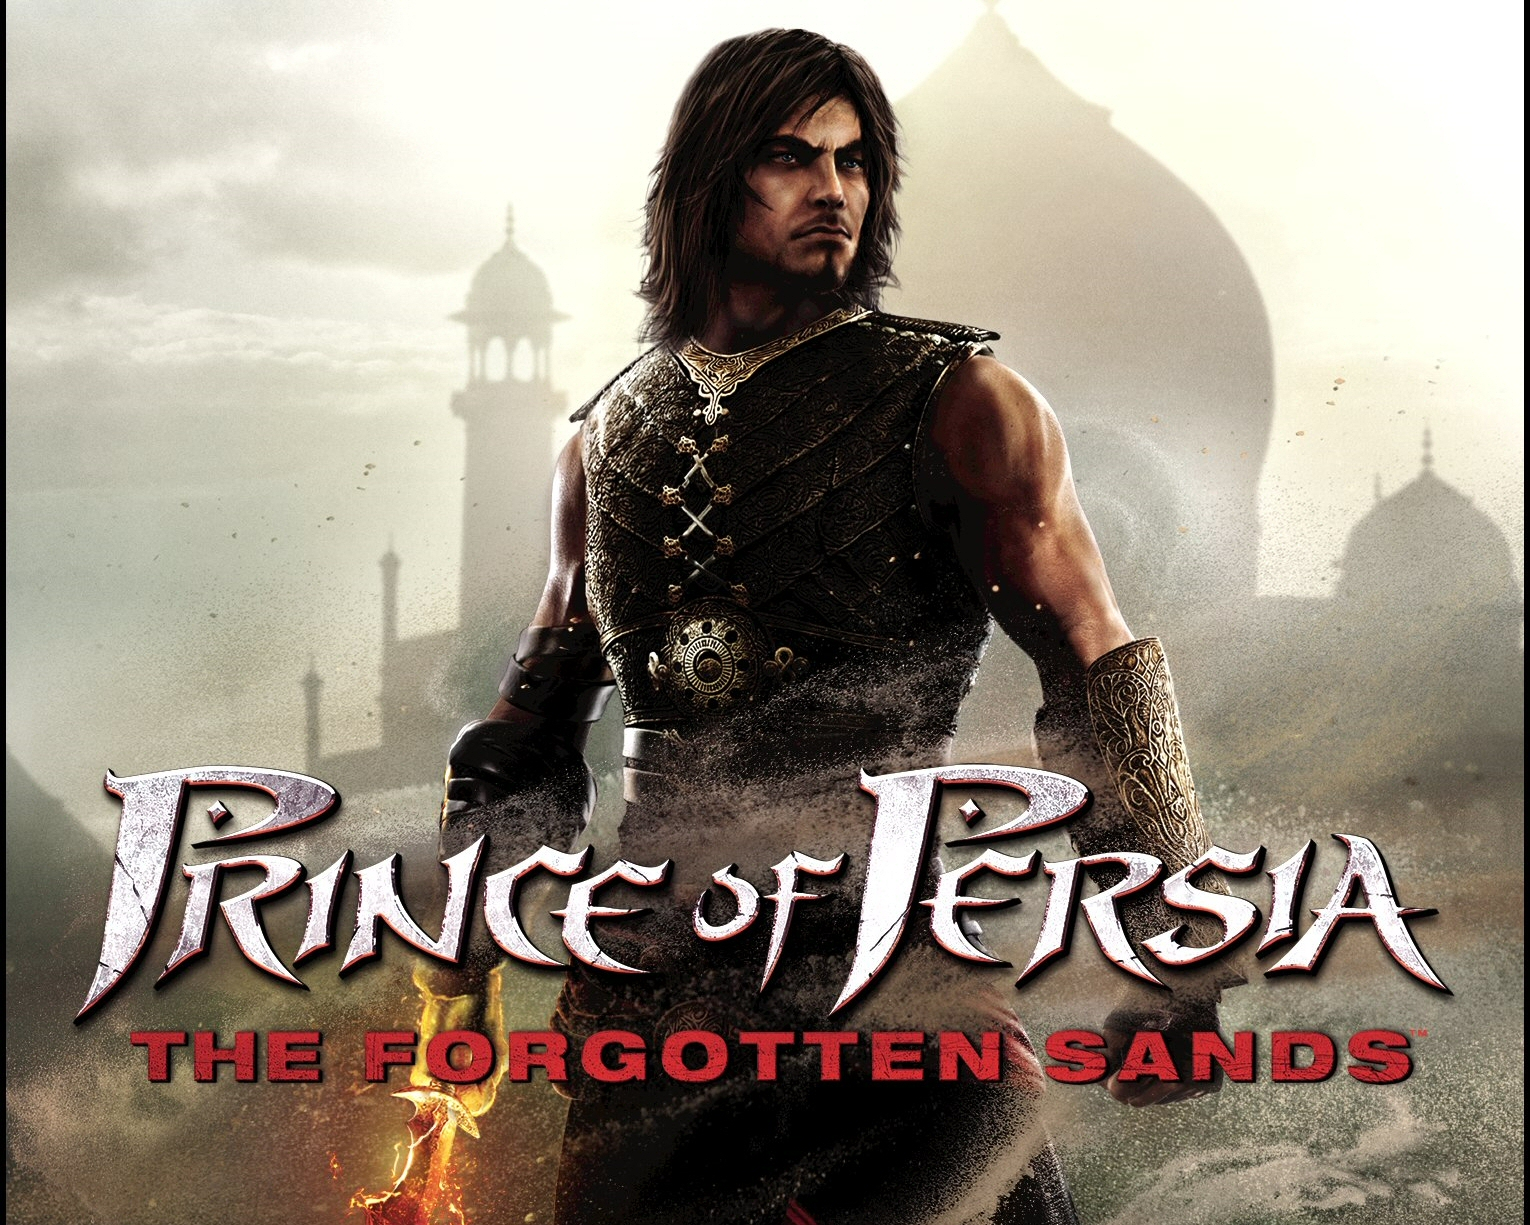 Prince of Persia: The Forgotten Sands Boxart